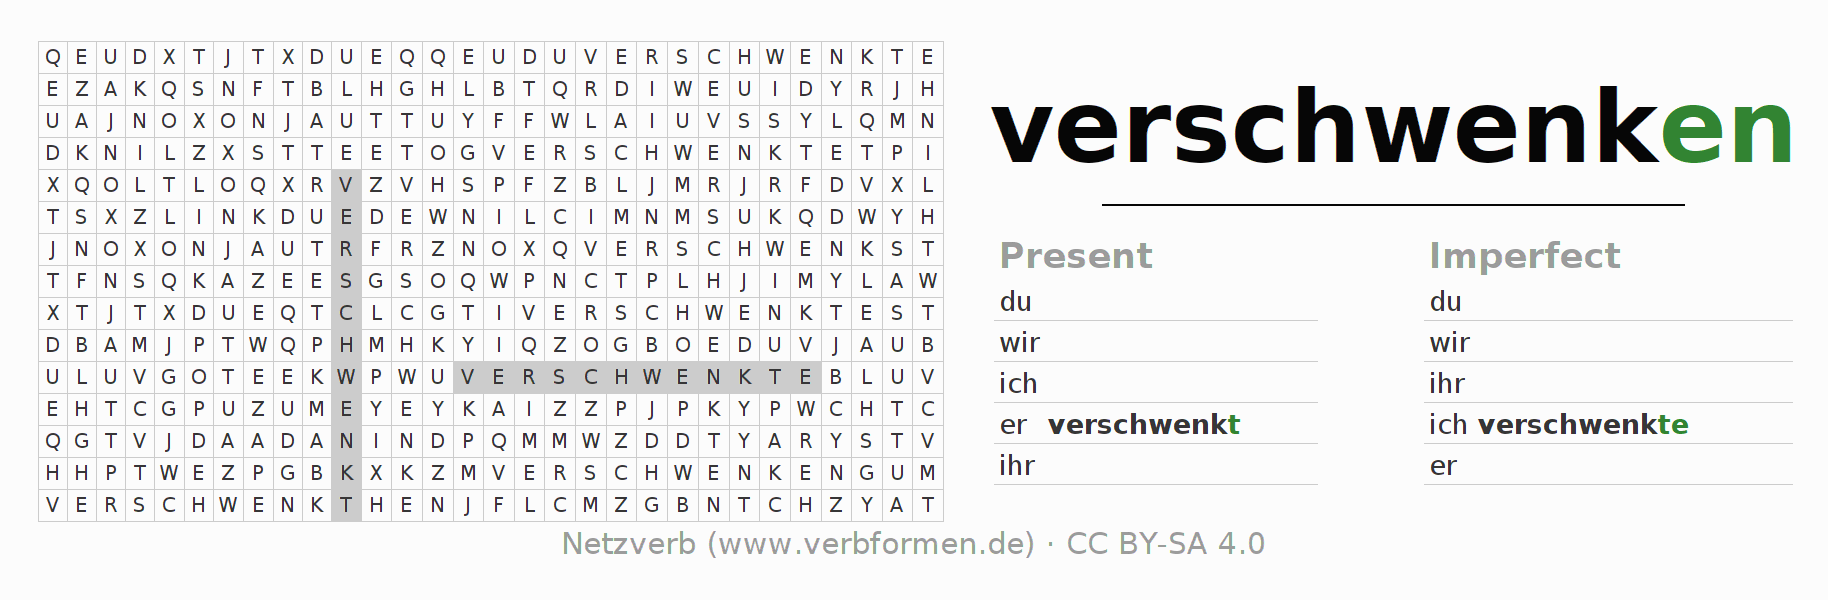 Word search puzzle for the conjugation of the verb verschwenken